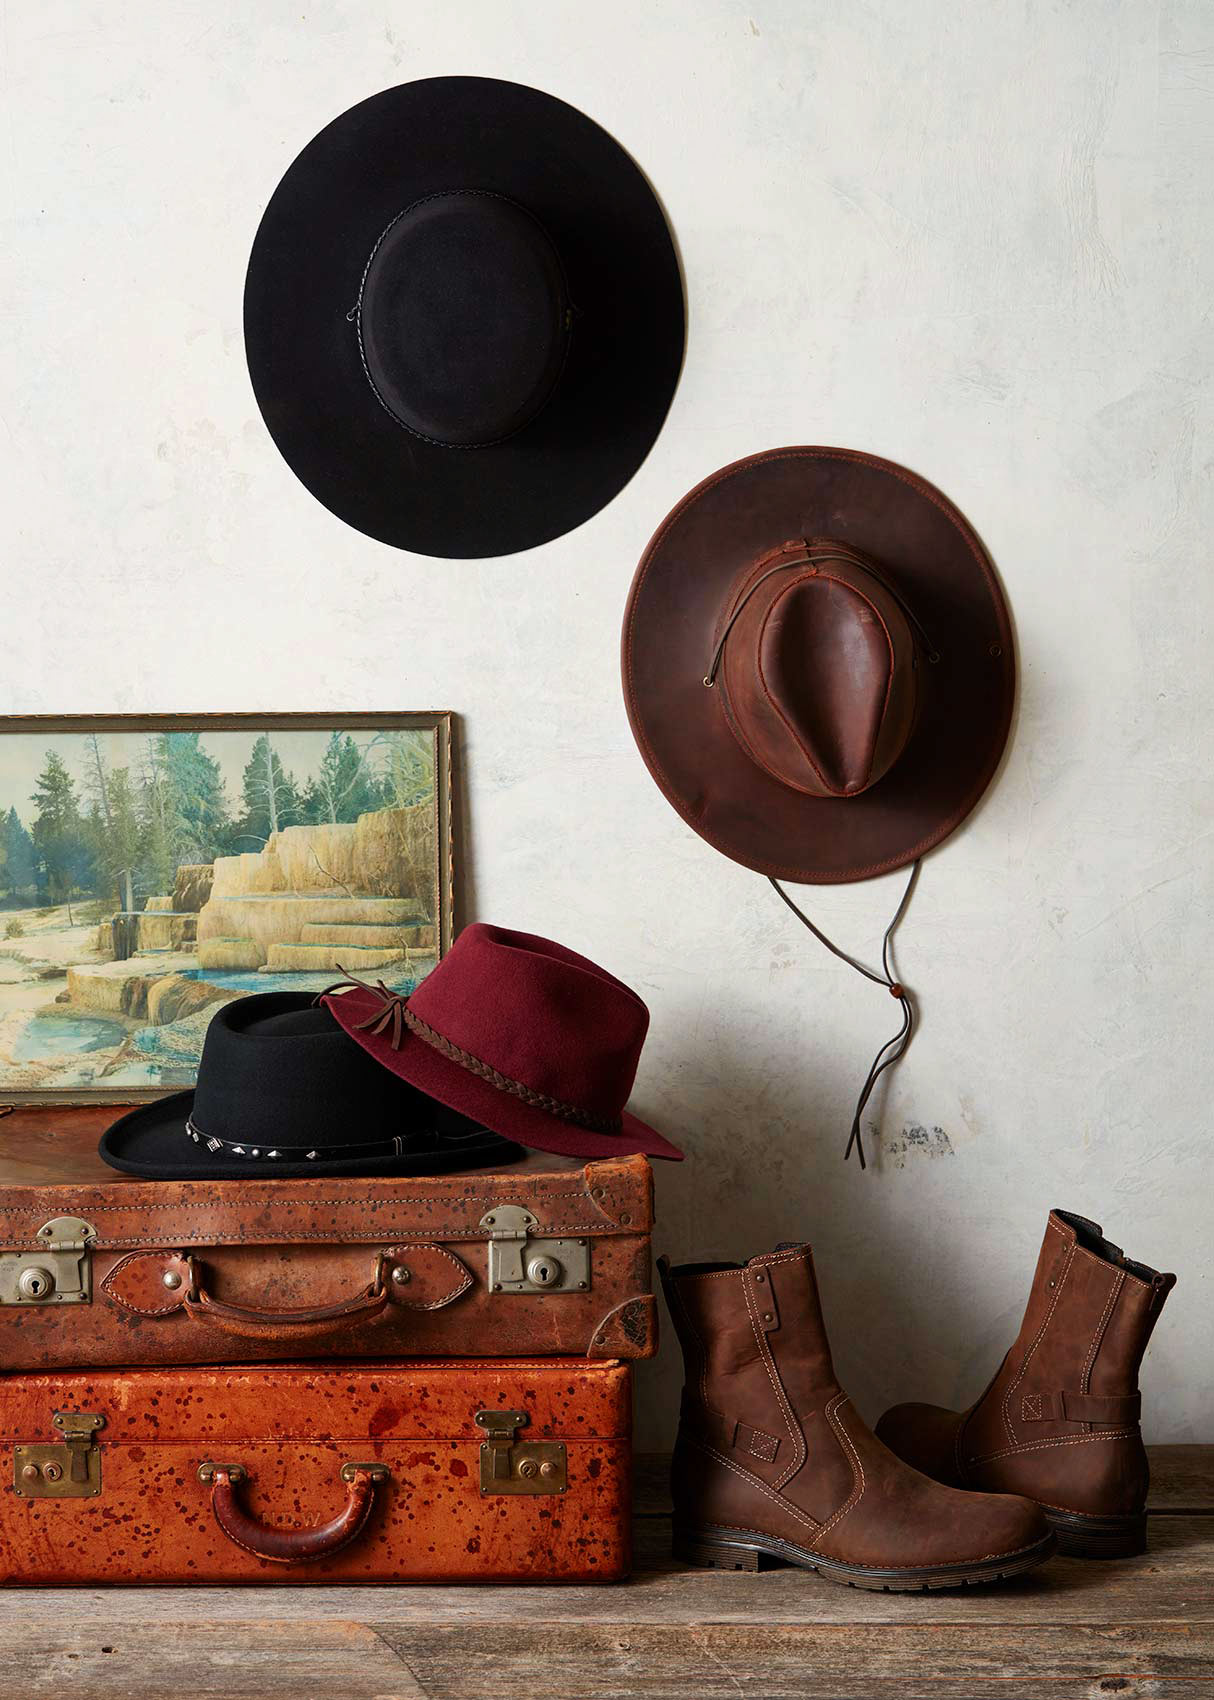 Catalog photography featuring hats and shoes.